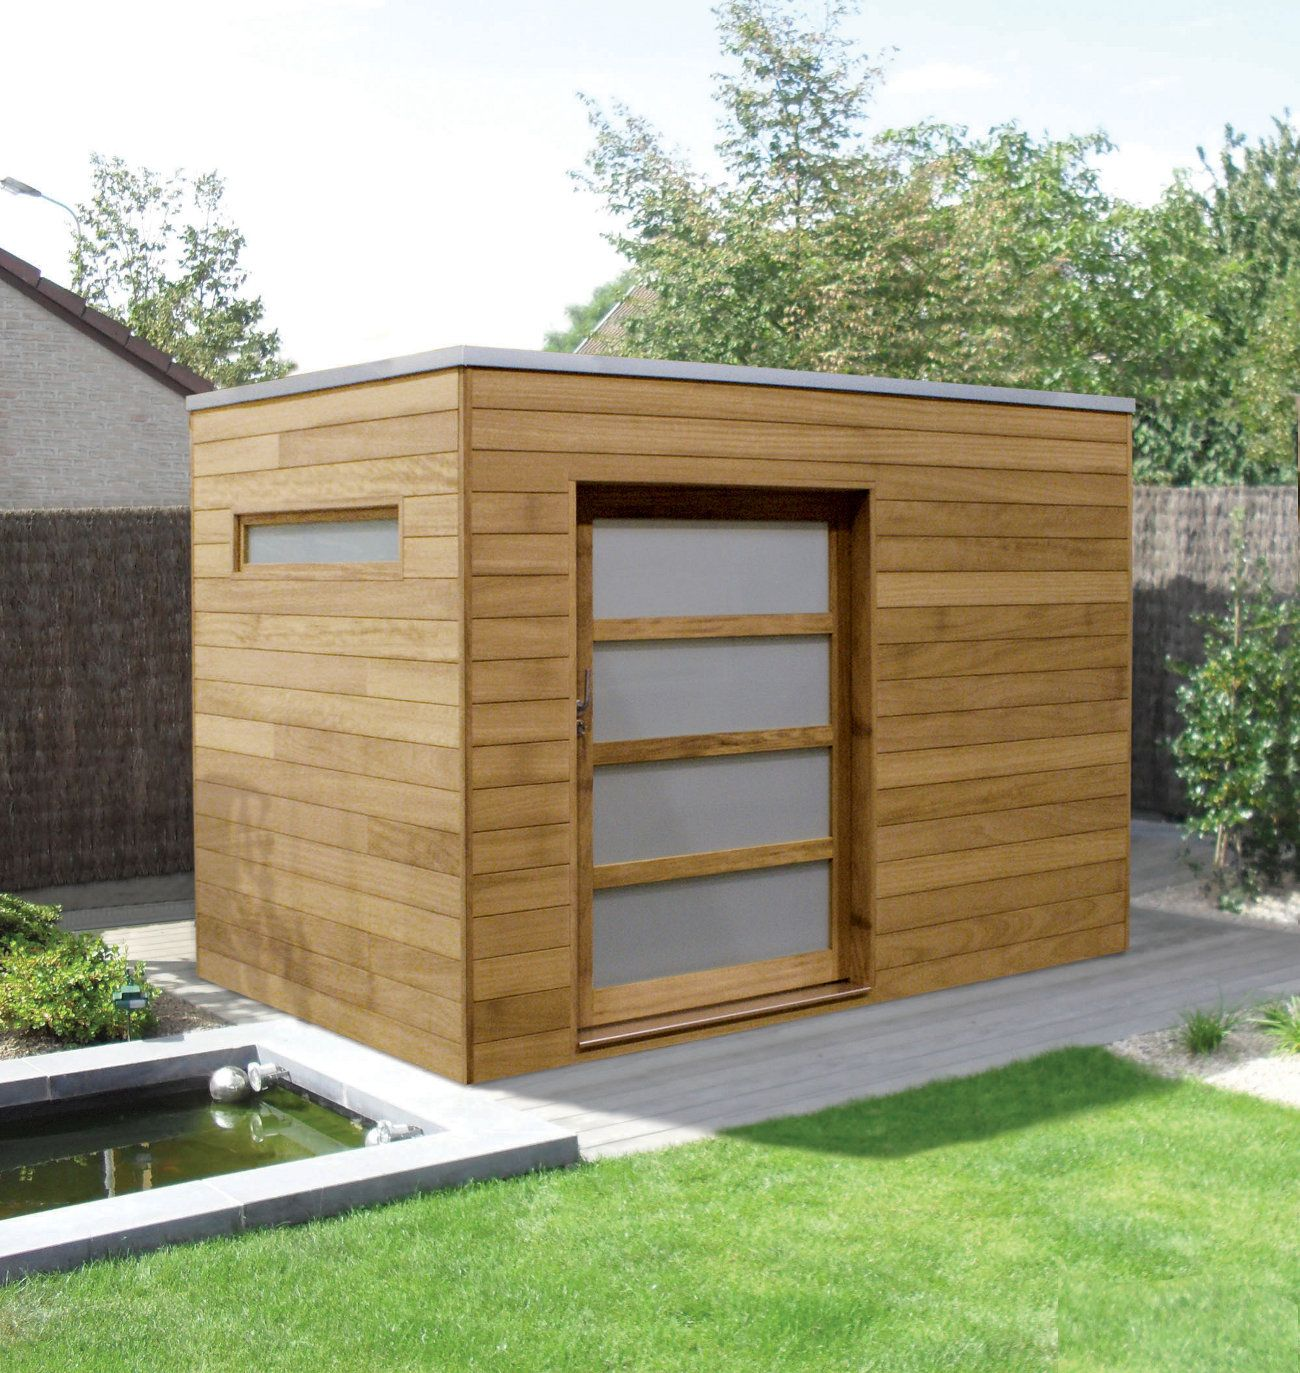 uk traditional original pent co htm x shed buildings garden gardensite shedlands sheds